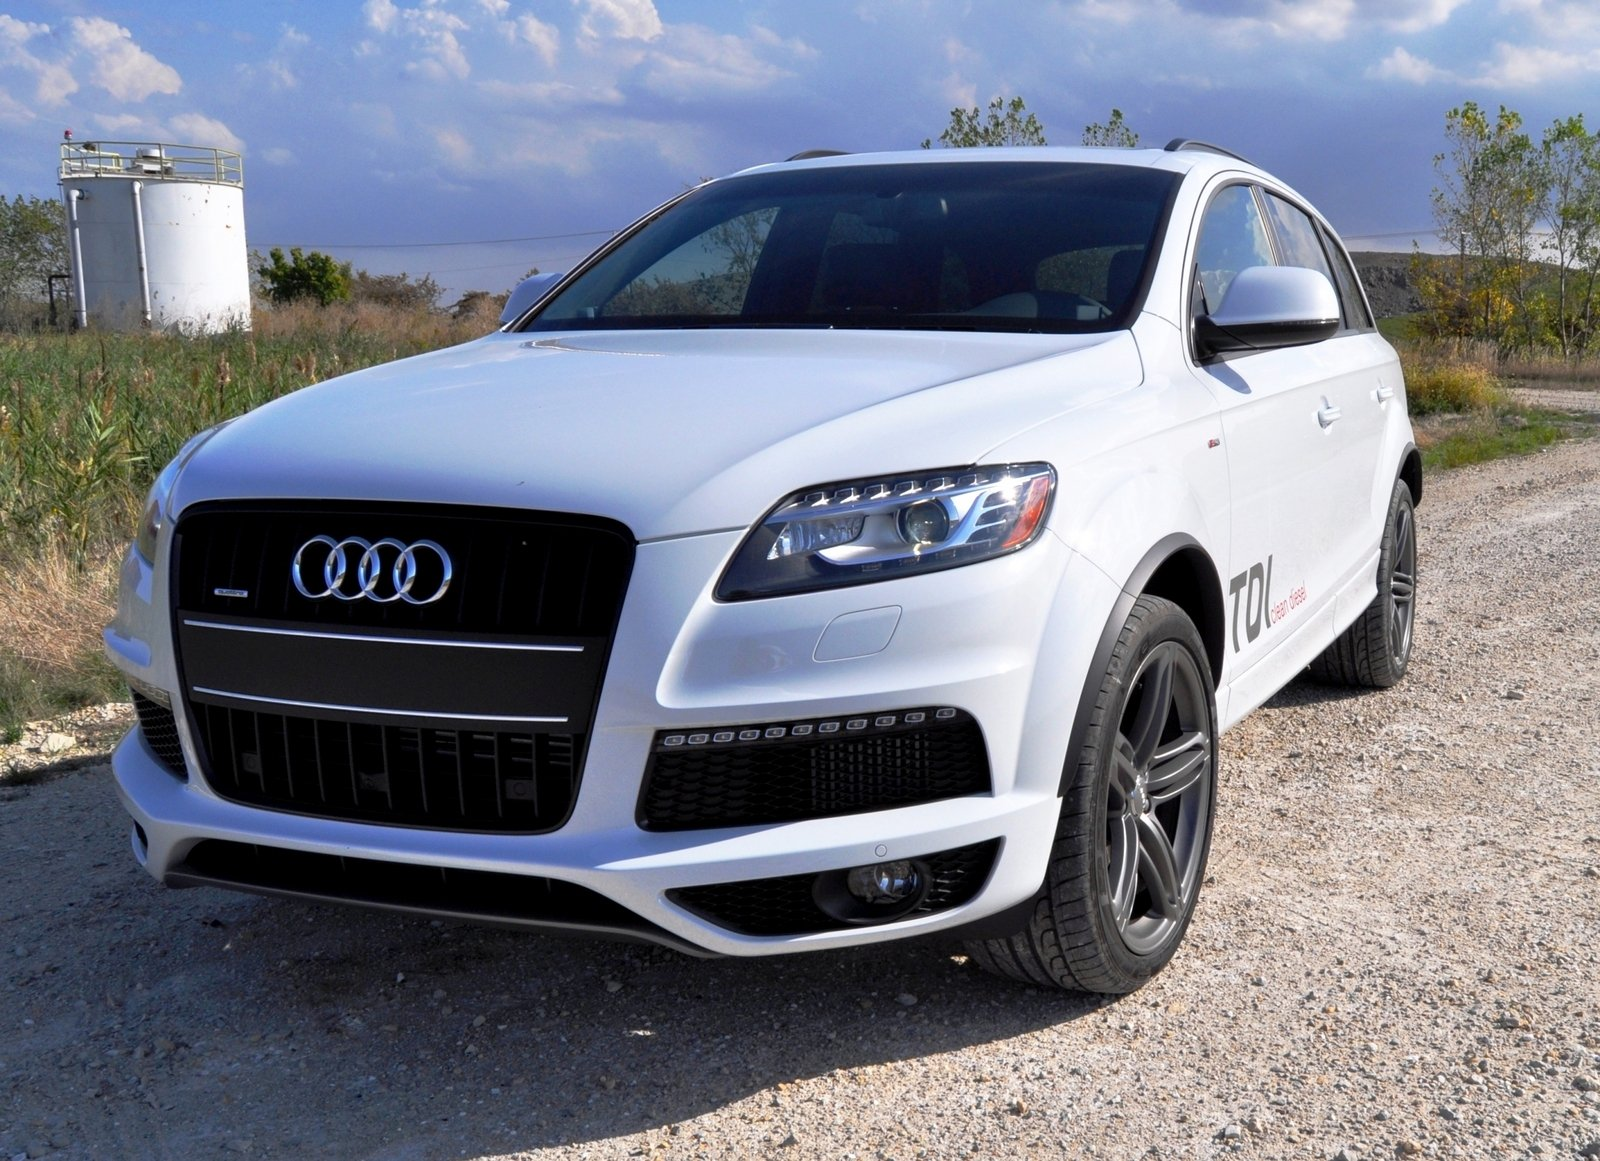 2014 audi q7 tdi s line driven picture 527876 car review top speed. Black Bedroom Furniture Sets. Home Design Ideas